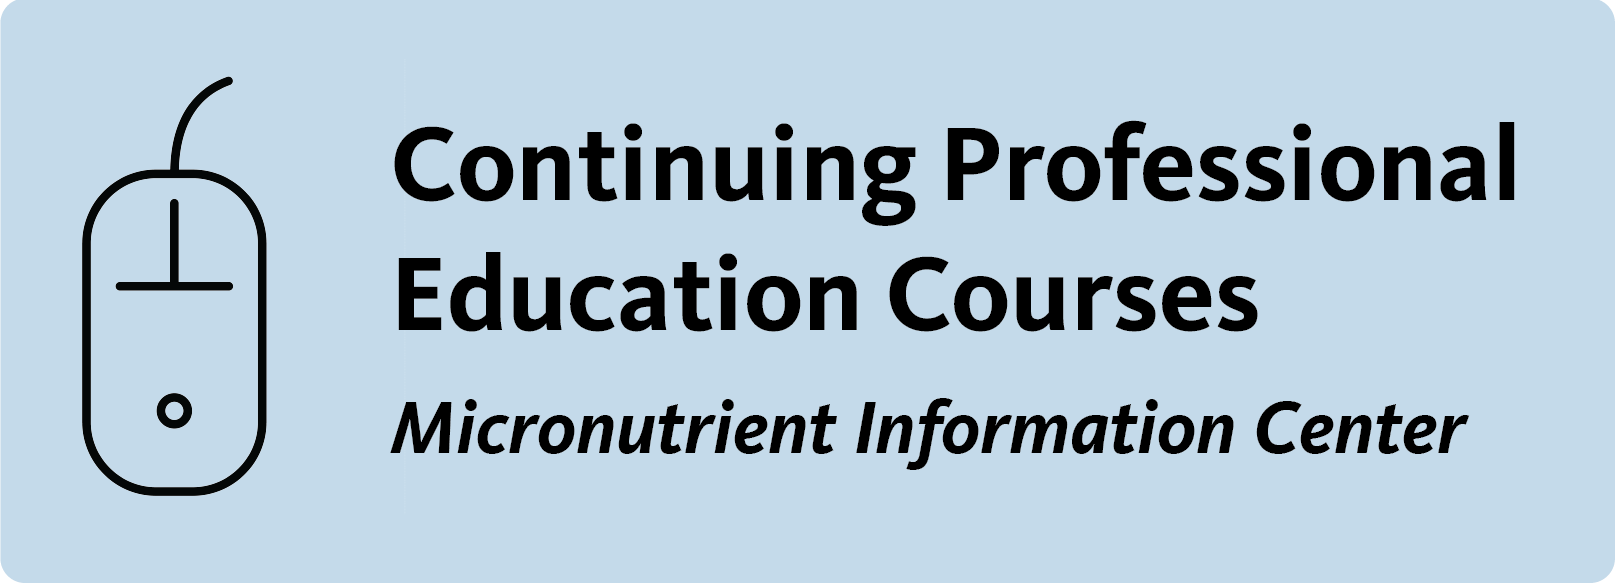 button to link to page that list the LPI continuing education courses